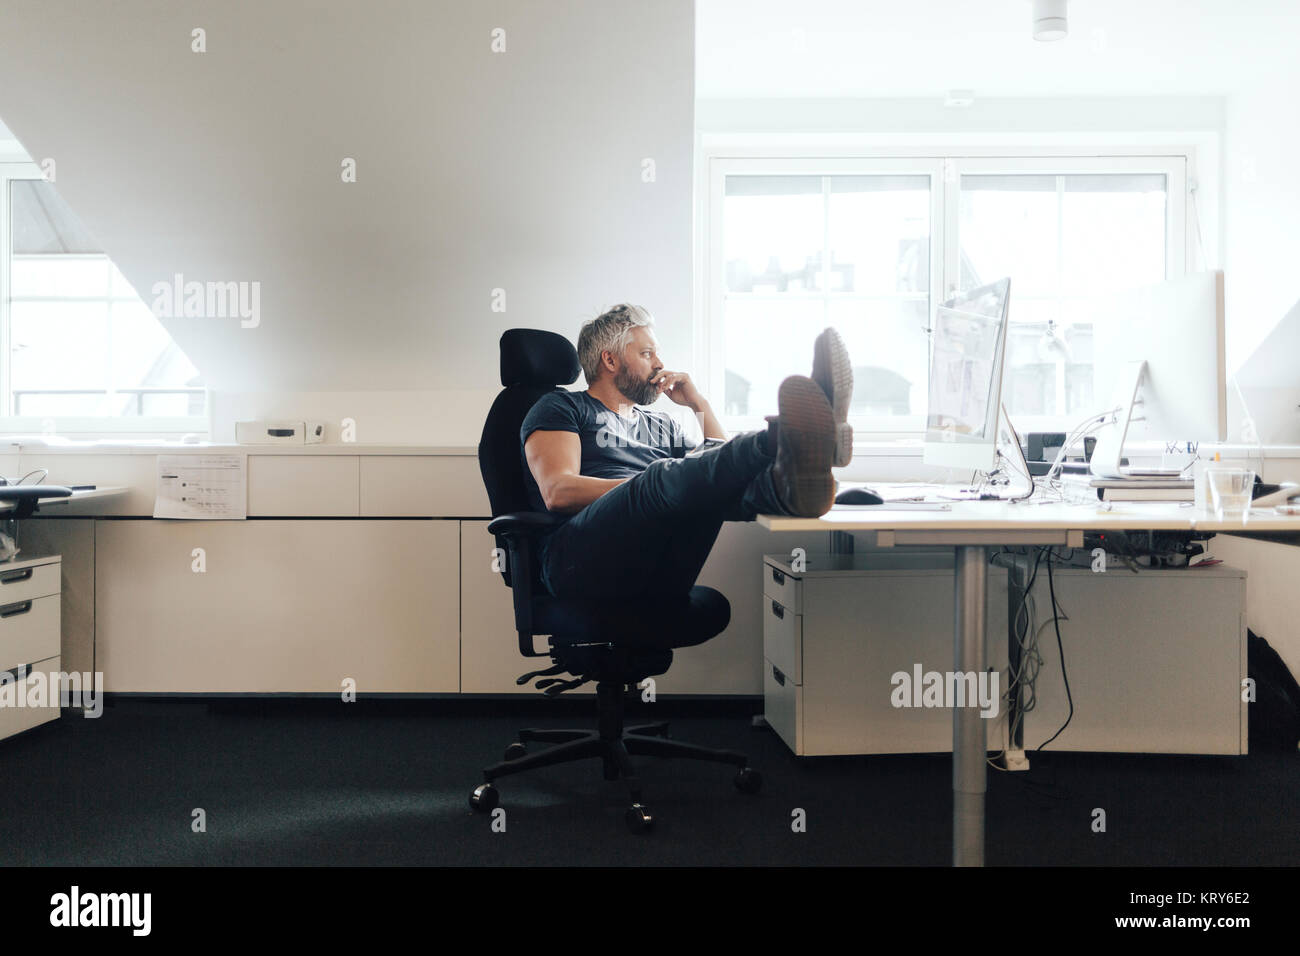 Man at an office desk - Stock Image